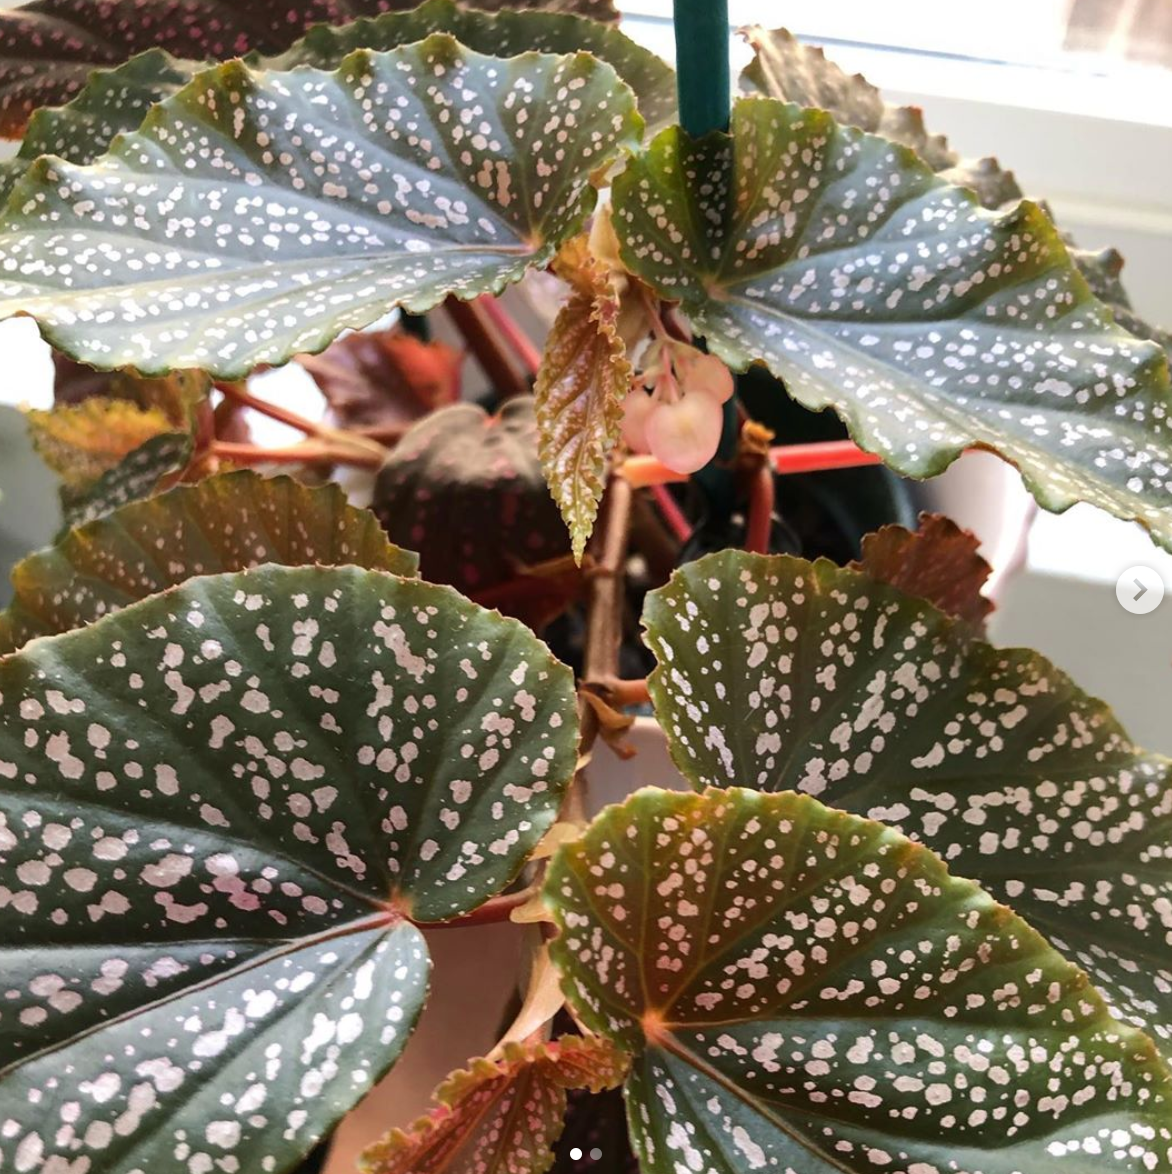 Begonia Benigo Care: Here's What You Need to Know